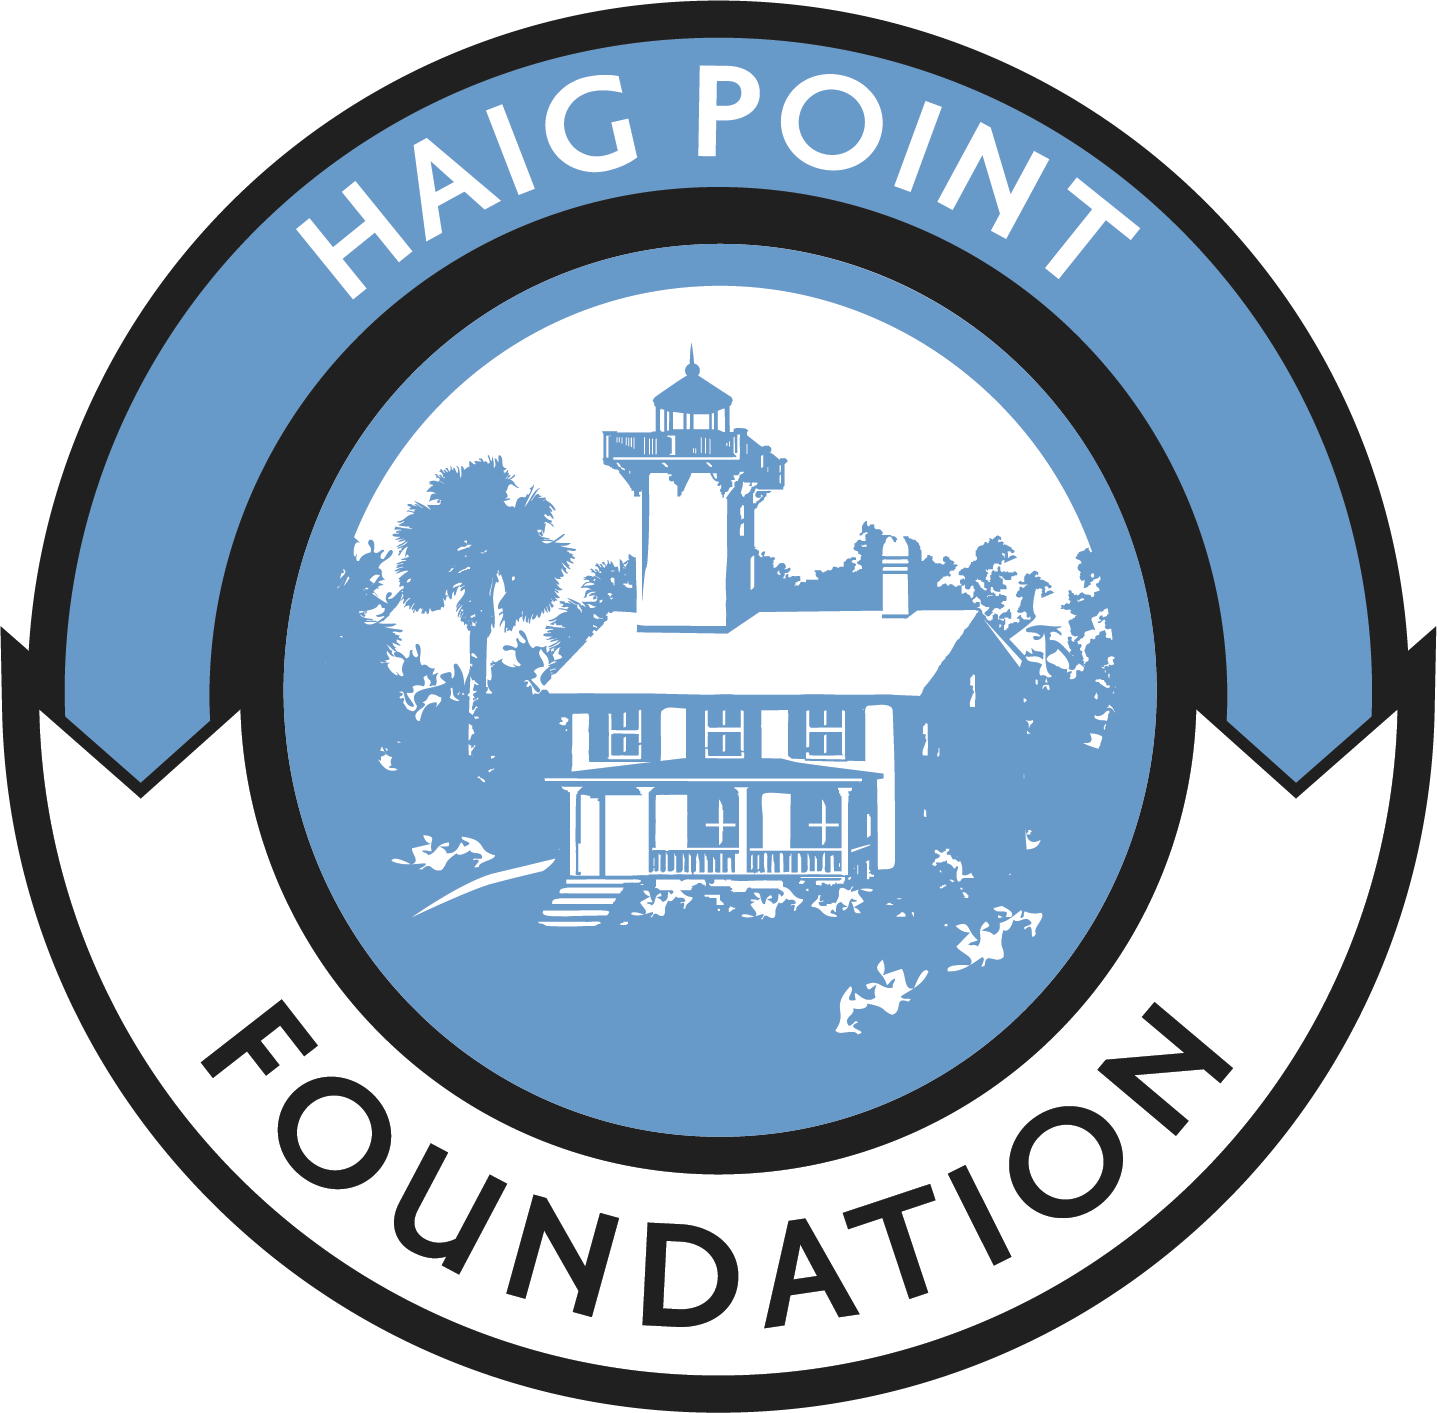 Haig Point Foundation